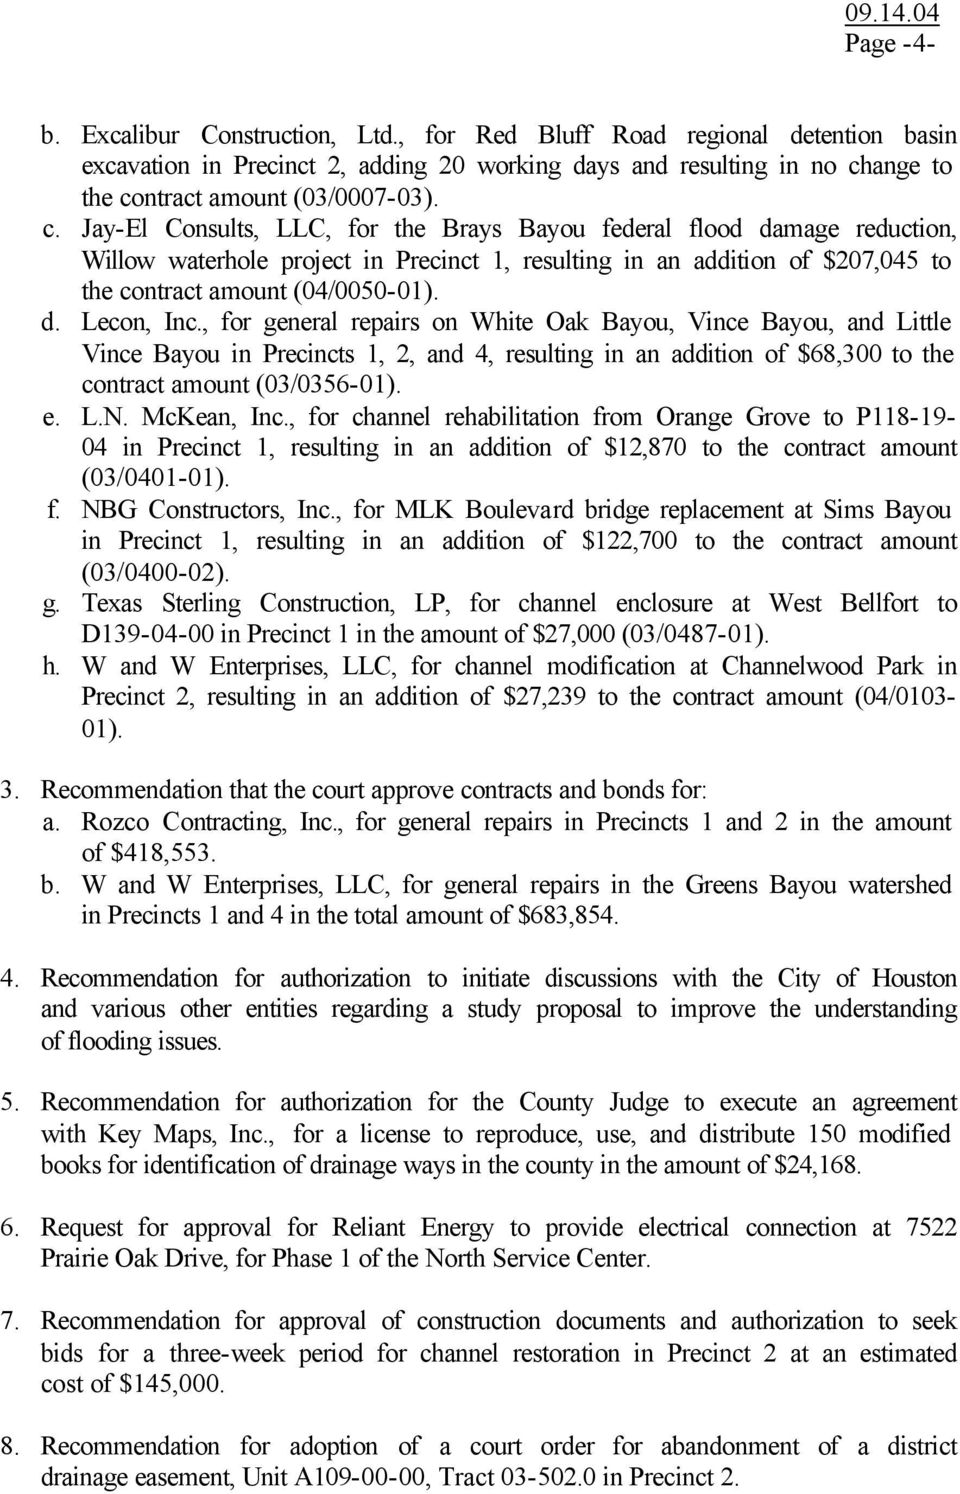 , for general repairs on White Oak Bayou, Vince Bayou, and Little Vince Bayou in Precincts 1, 2, and 4, resulting in an addition of $68,300 to the contract amount (03/0356-01). e. L.N. McKean, Inc.